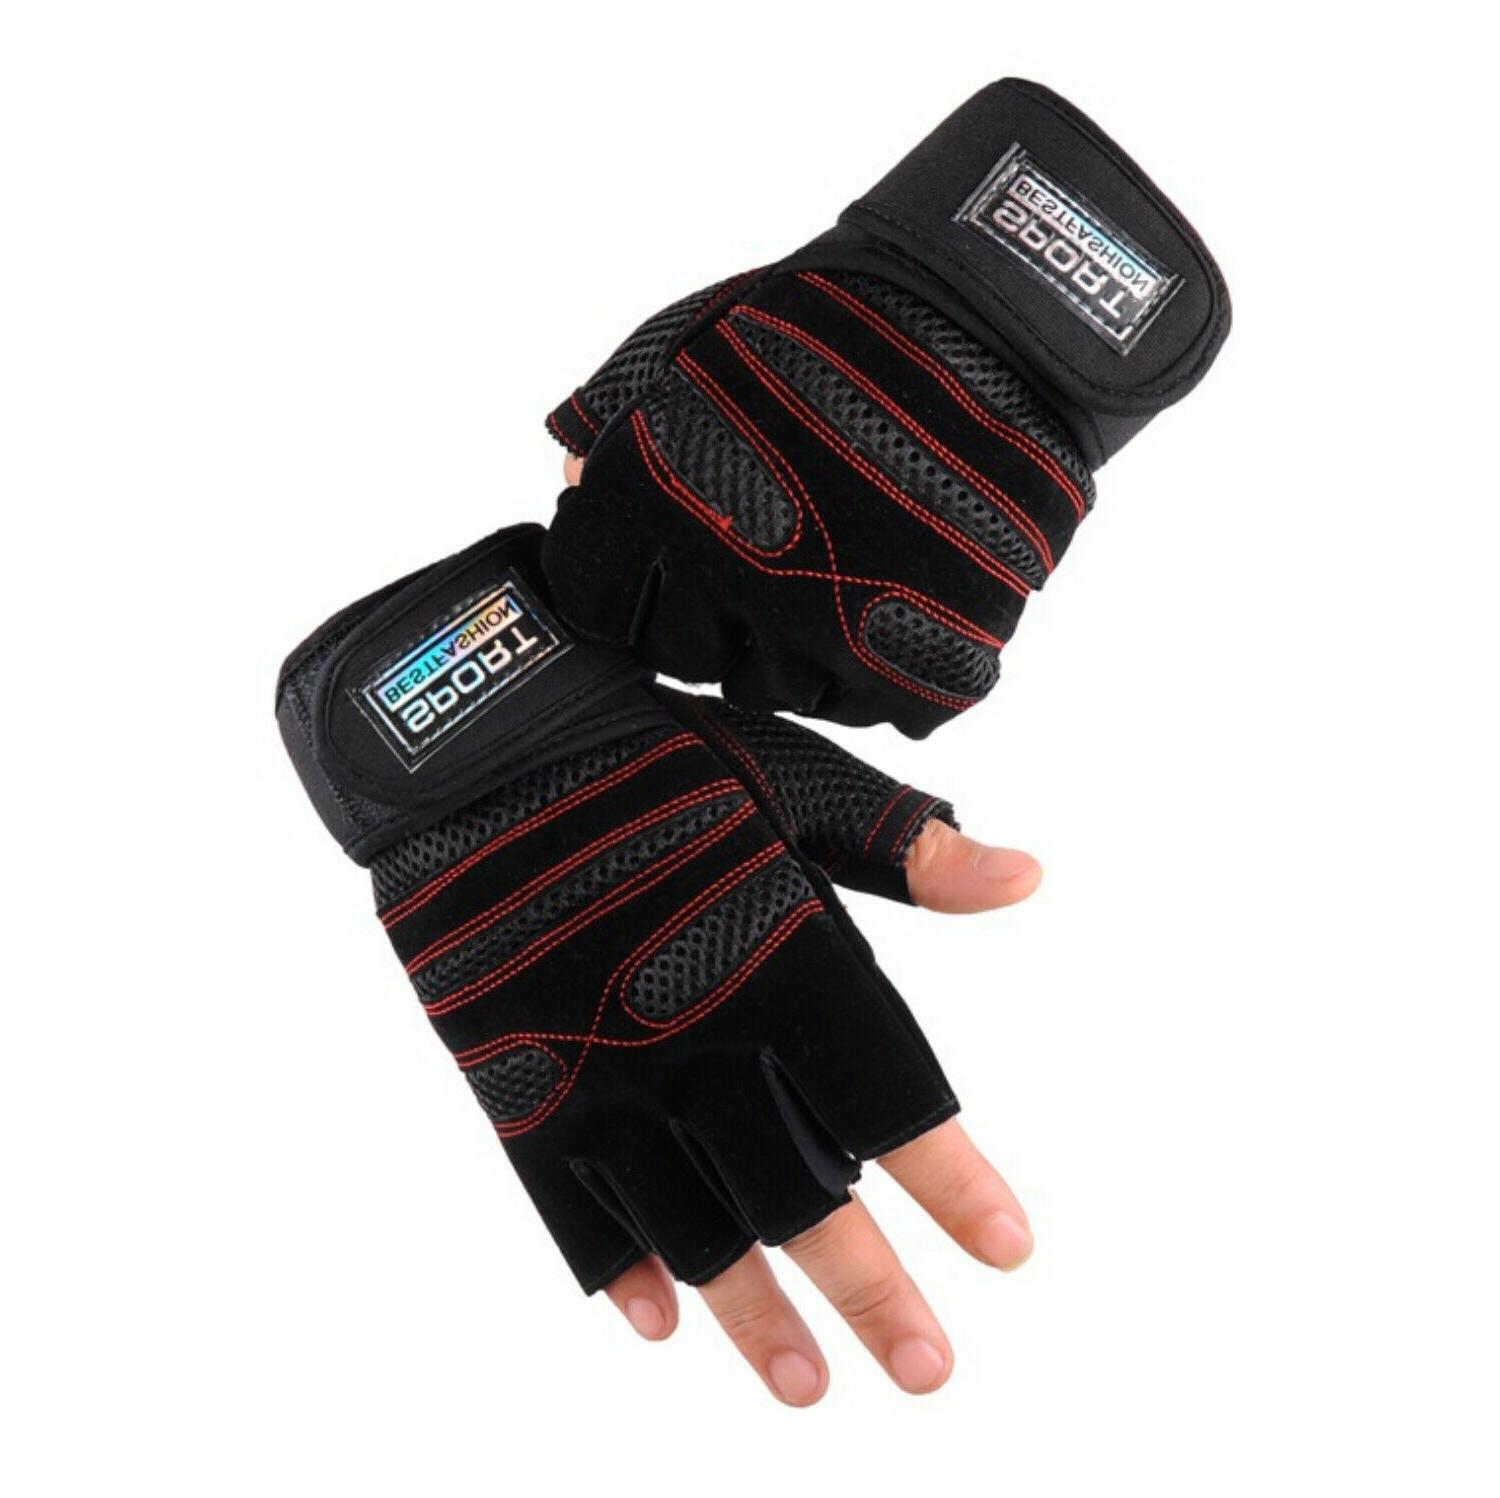 Wrist Wrap Fitness Workout Exercise Gym